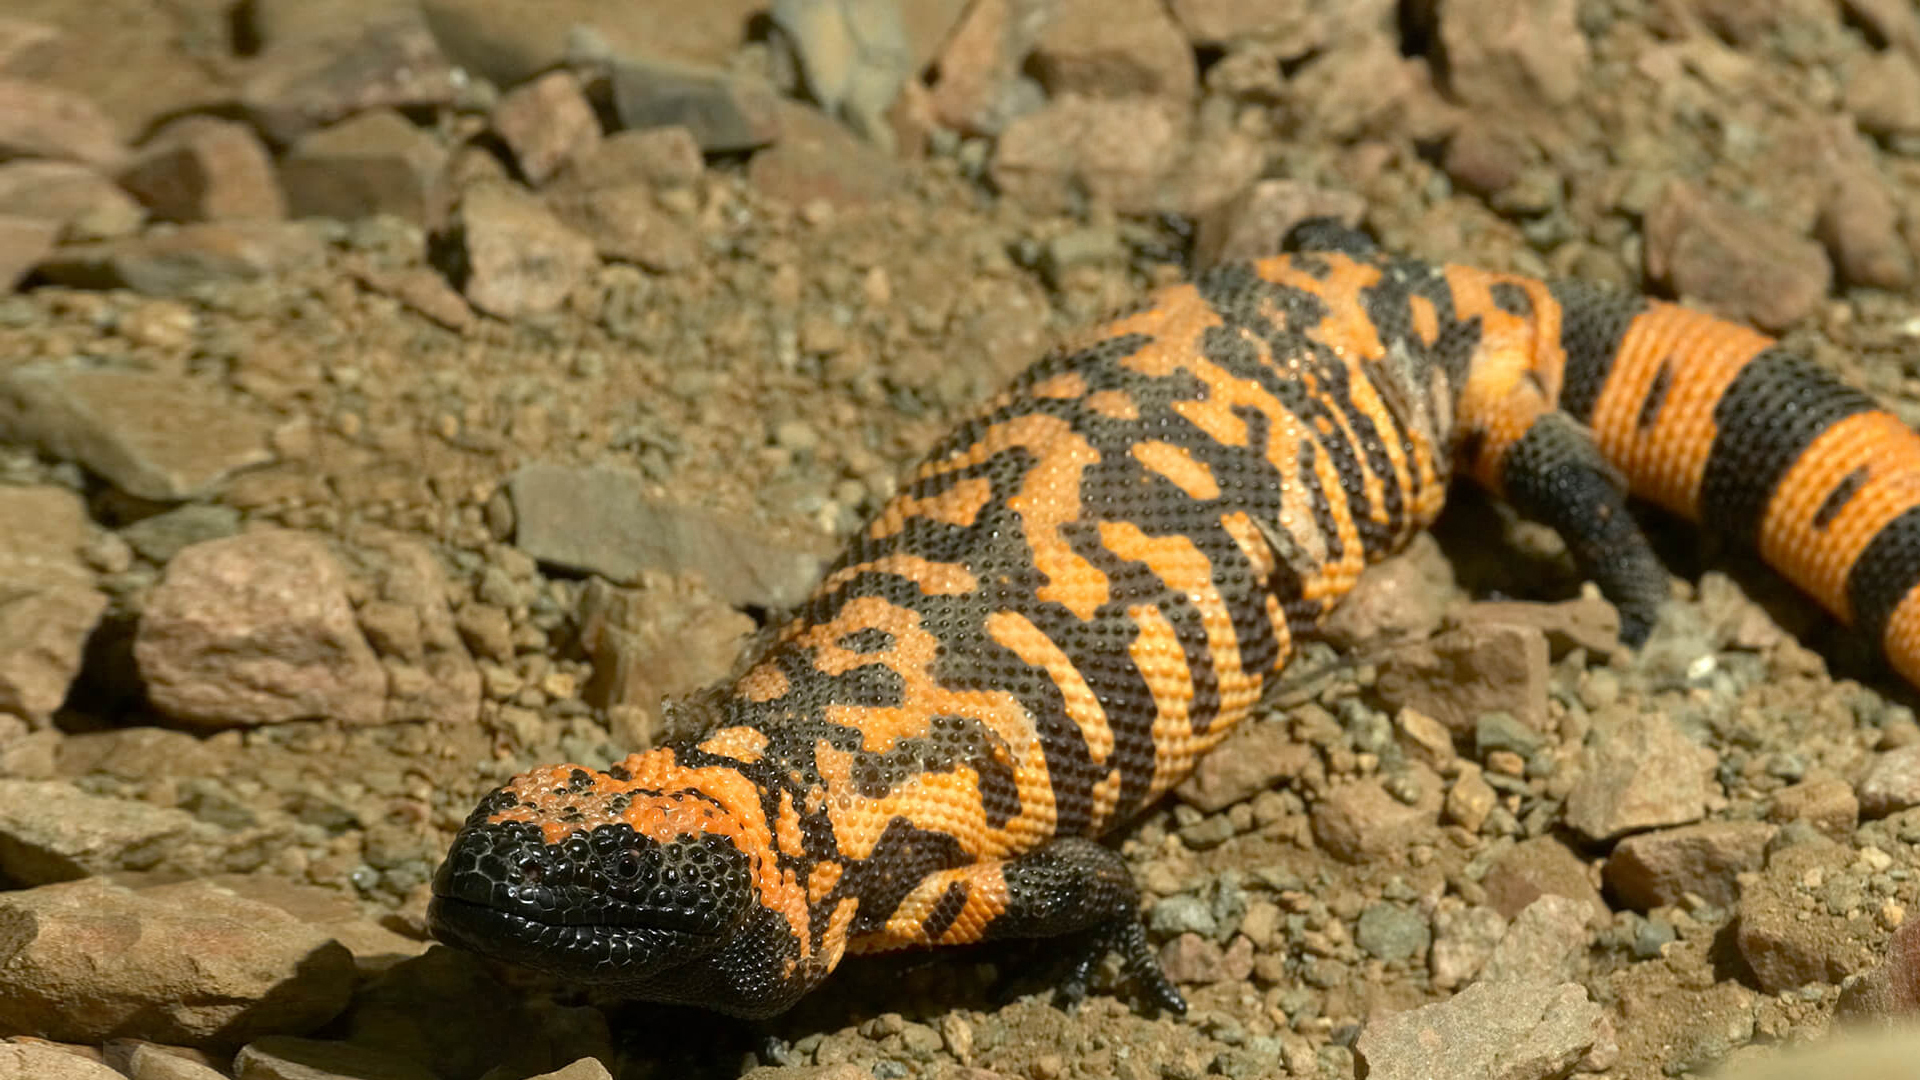 Gila monster crawling along rocky brown dirt